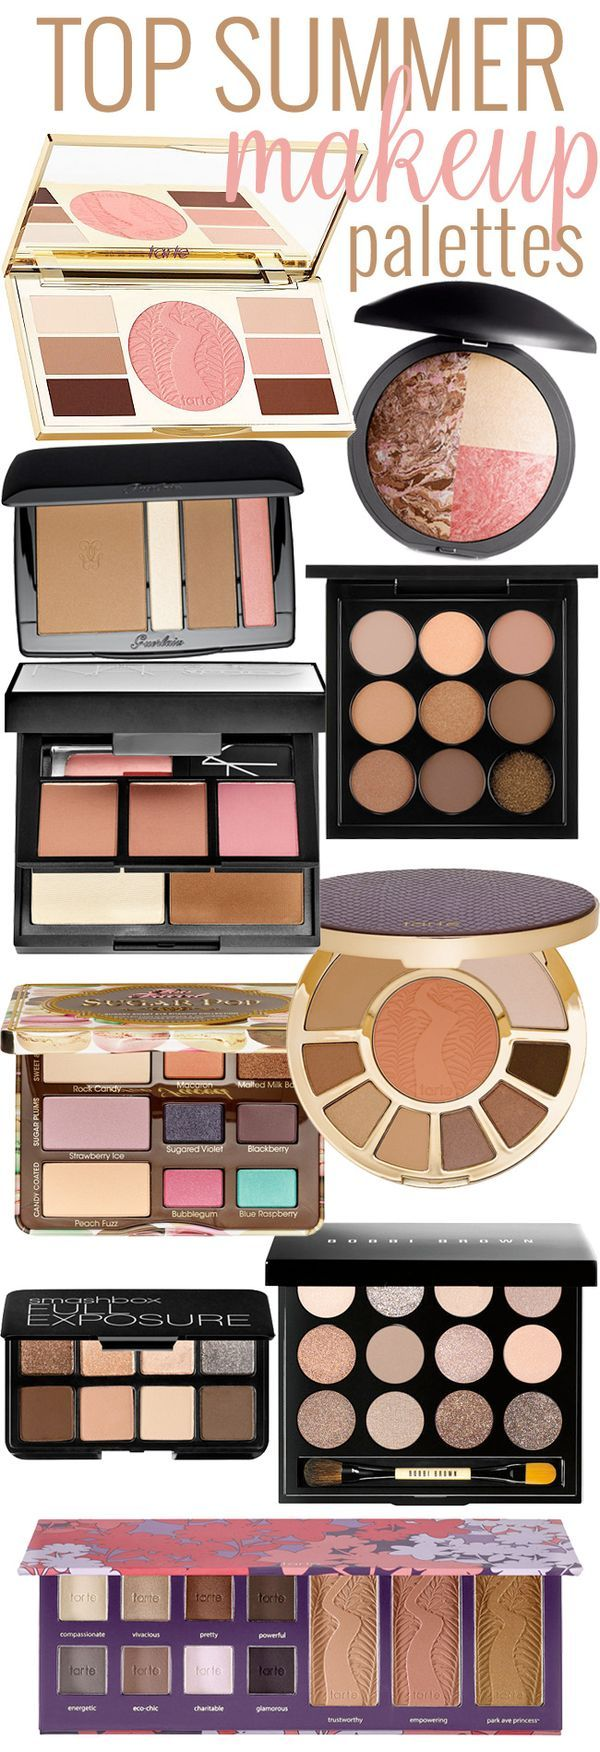 Top Summer Makeup Palettes for Your Cosmetics Collection